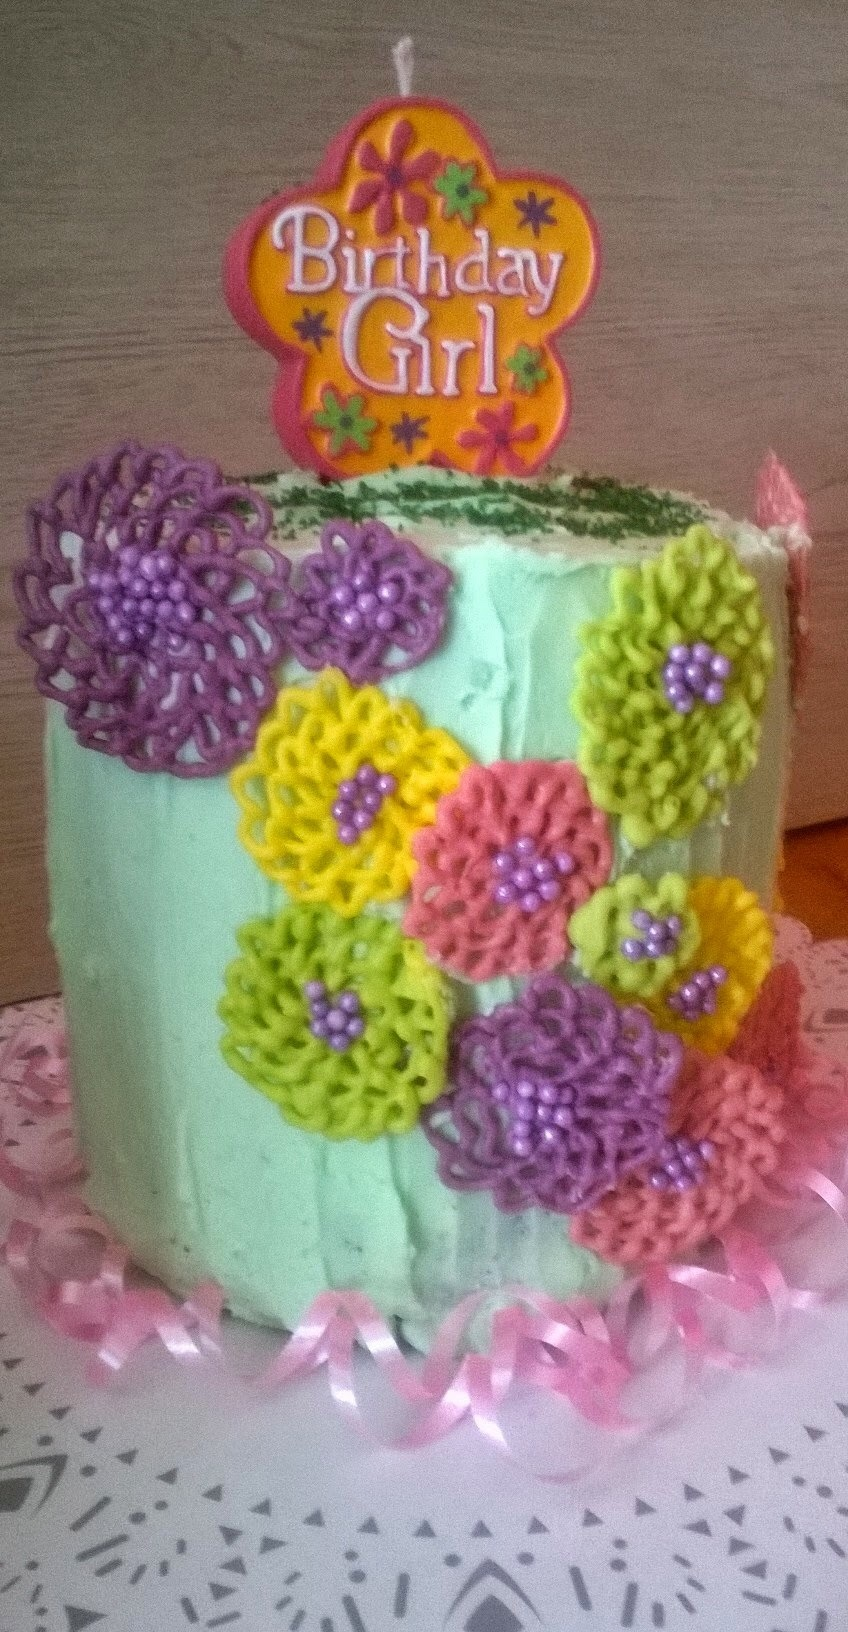 Pastel con Flores de Chocolate (Spring Time Flowers in Chocolate)